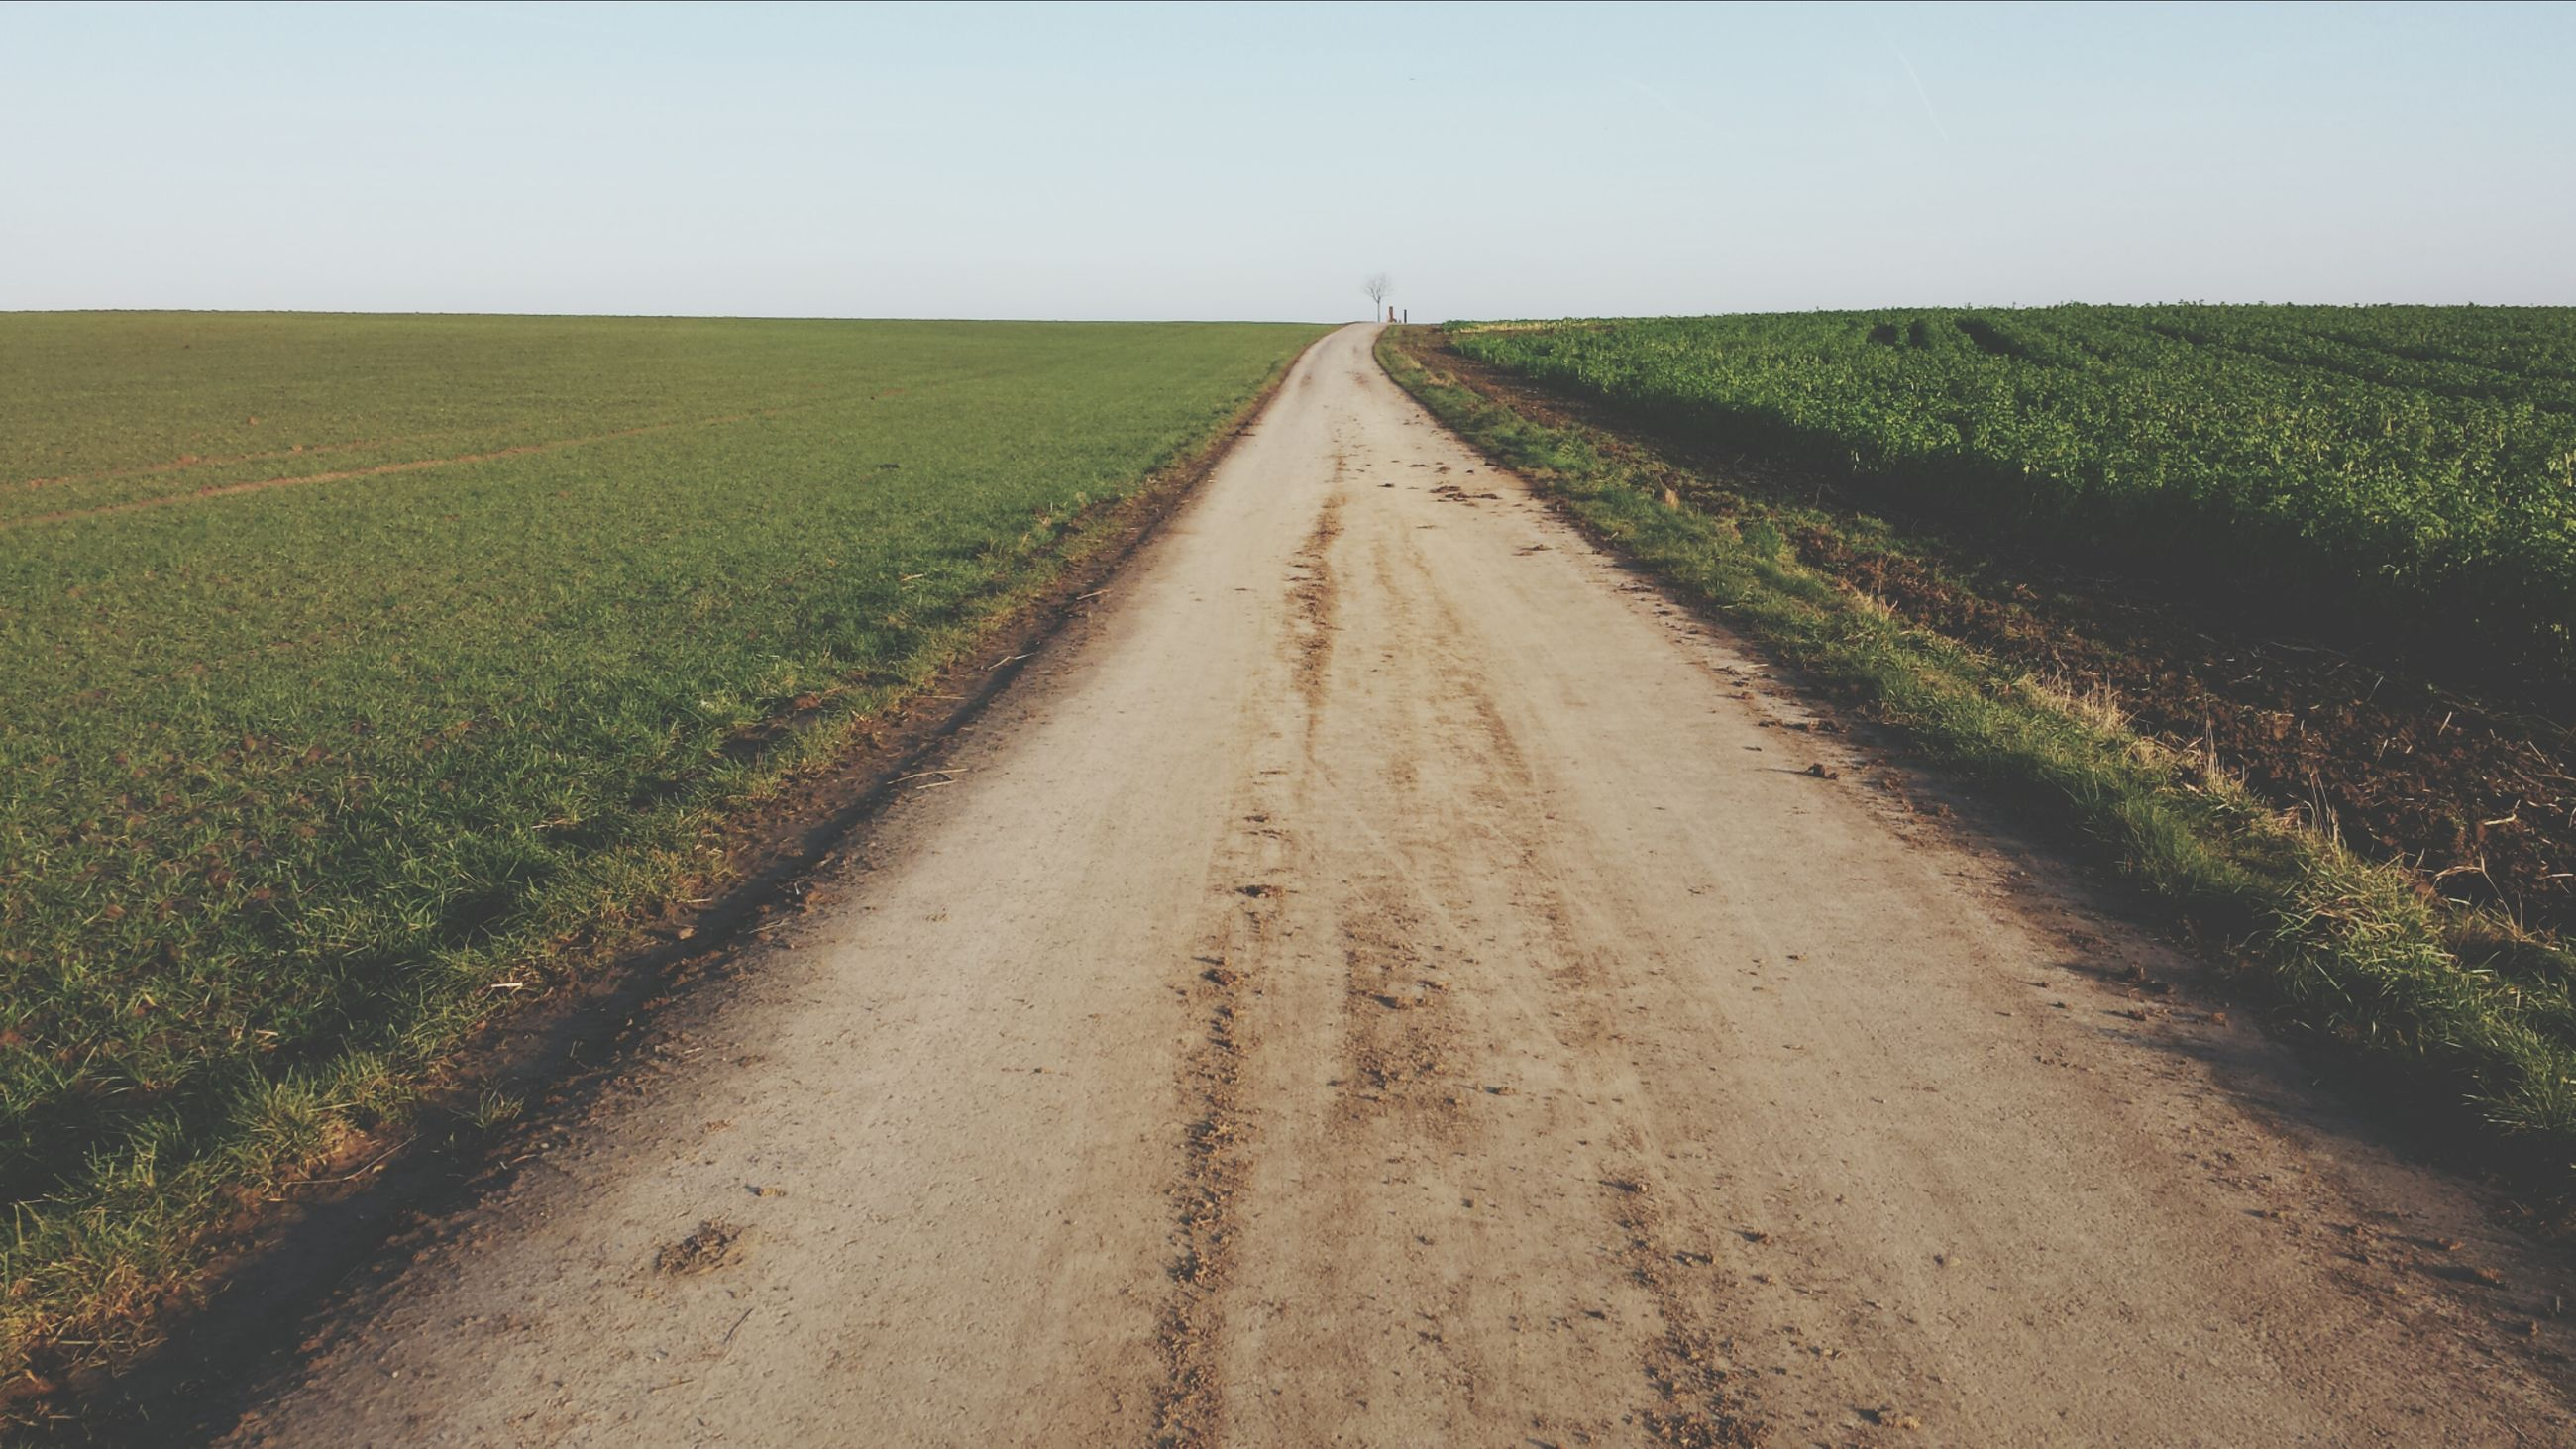 the way forward, diminishing perspective, agriculture, rural scene, landscape, vanishing point, field, tranquil scene, tranquility, farm, dirt road, transportation, road, grass, growth, nature, crop, clear sky, country road, scenics